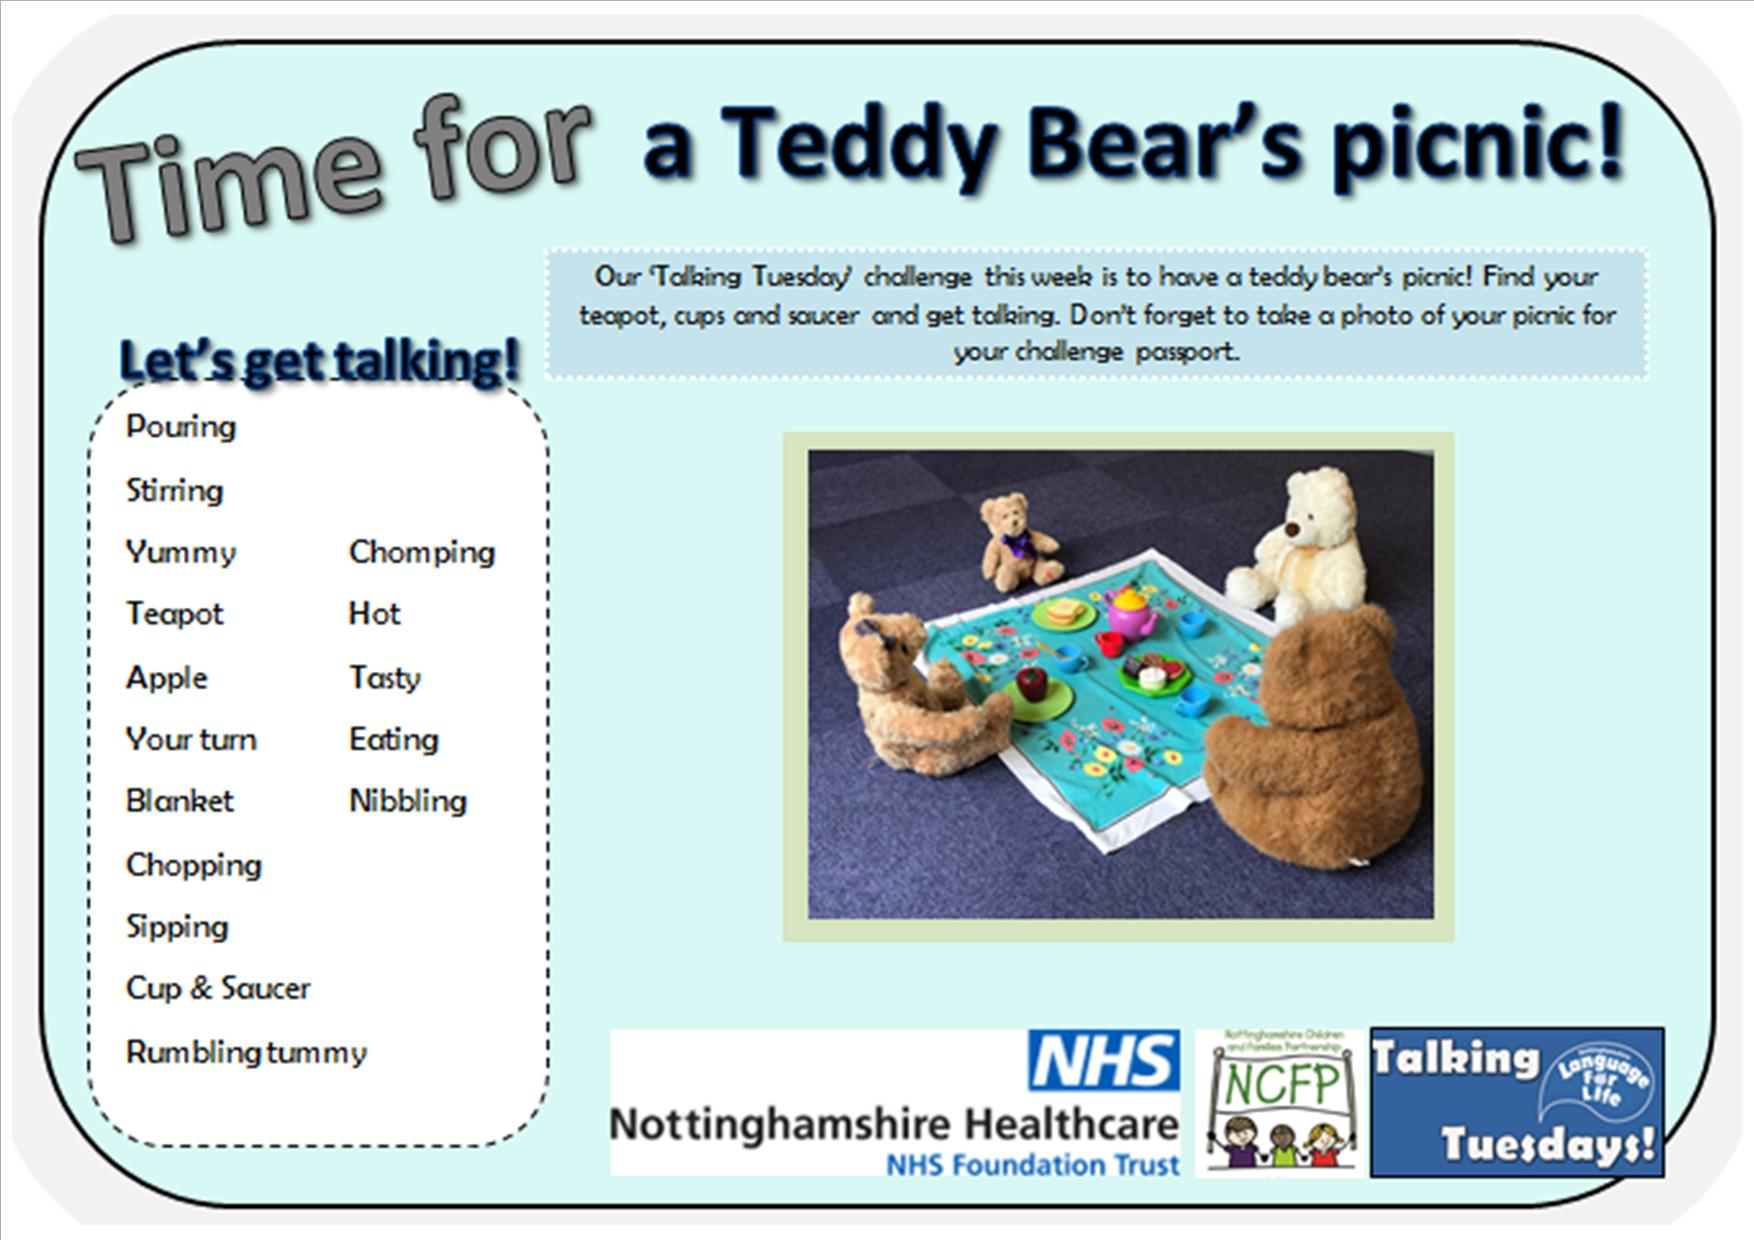 Our 'Talking Tuesday' challenge this week is to have a teddy bear's picnic! find your teapot, cups and saucer and get talking. Don't forget to take a photo of your picnic for your challenge passport. Let's get talking! Pouring, stirring, yummy, teapot, apple, your turn, blanket, chopping, sipping, cup and saucer, rumbling tummy, chomping, hot, tasty, eating, nibbling